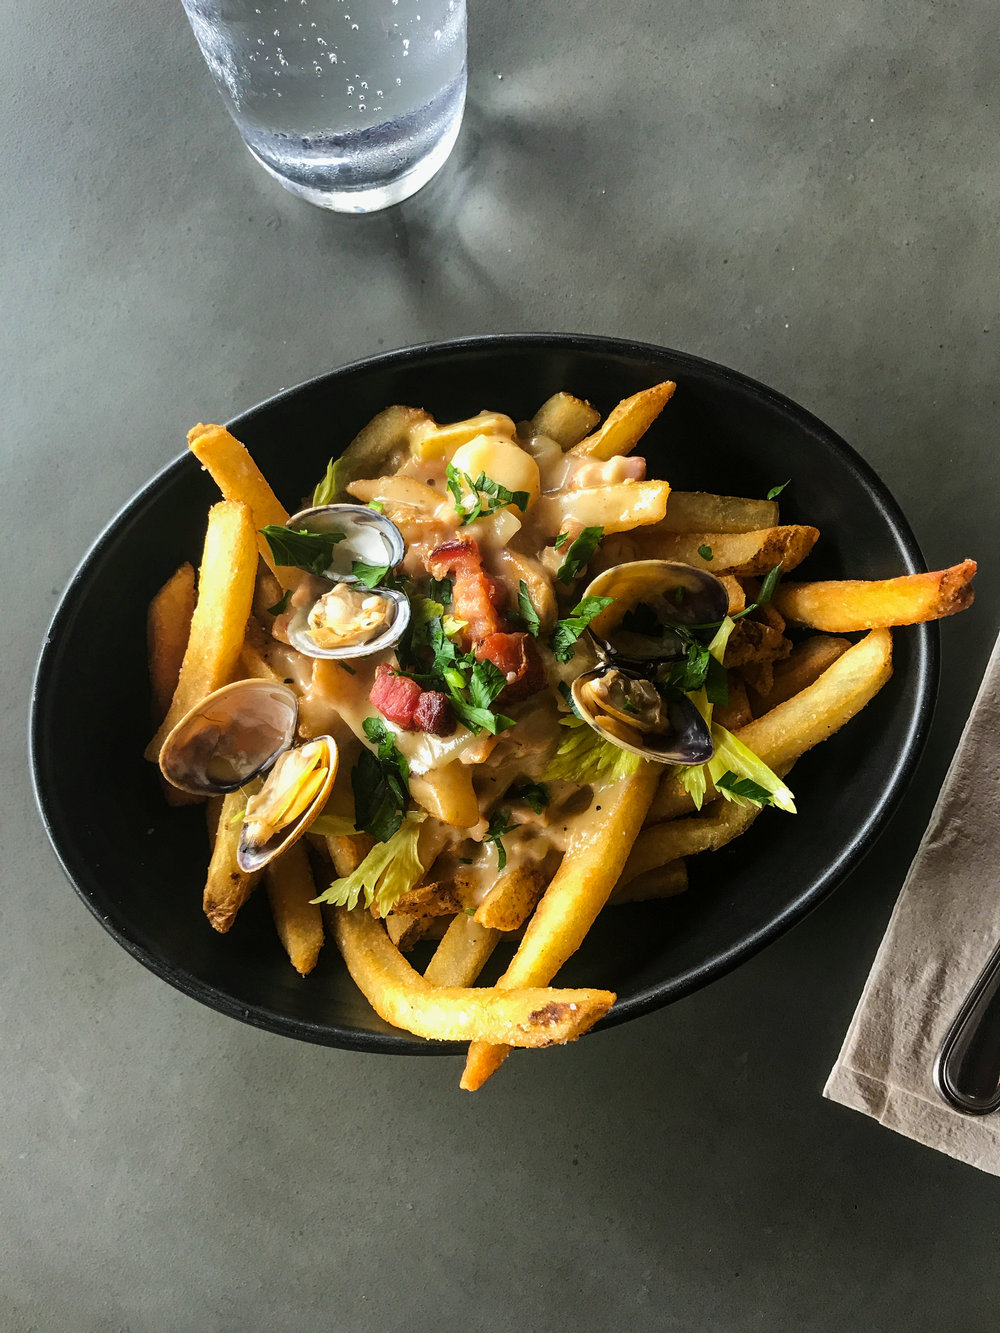 Chowder Fries from Plan Check - Housemade clam chowder, thick cut bacon, steamed little neck clams, celery.$12.00